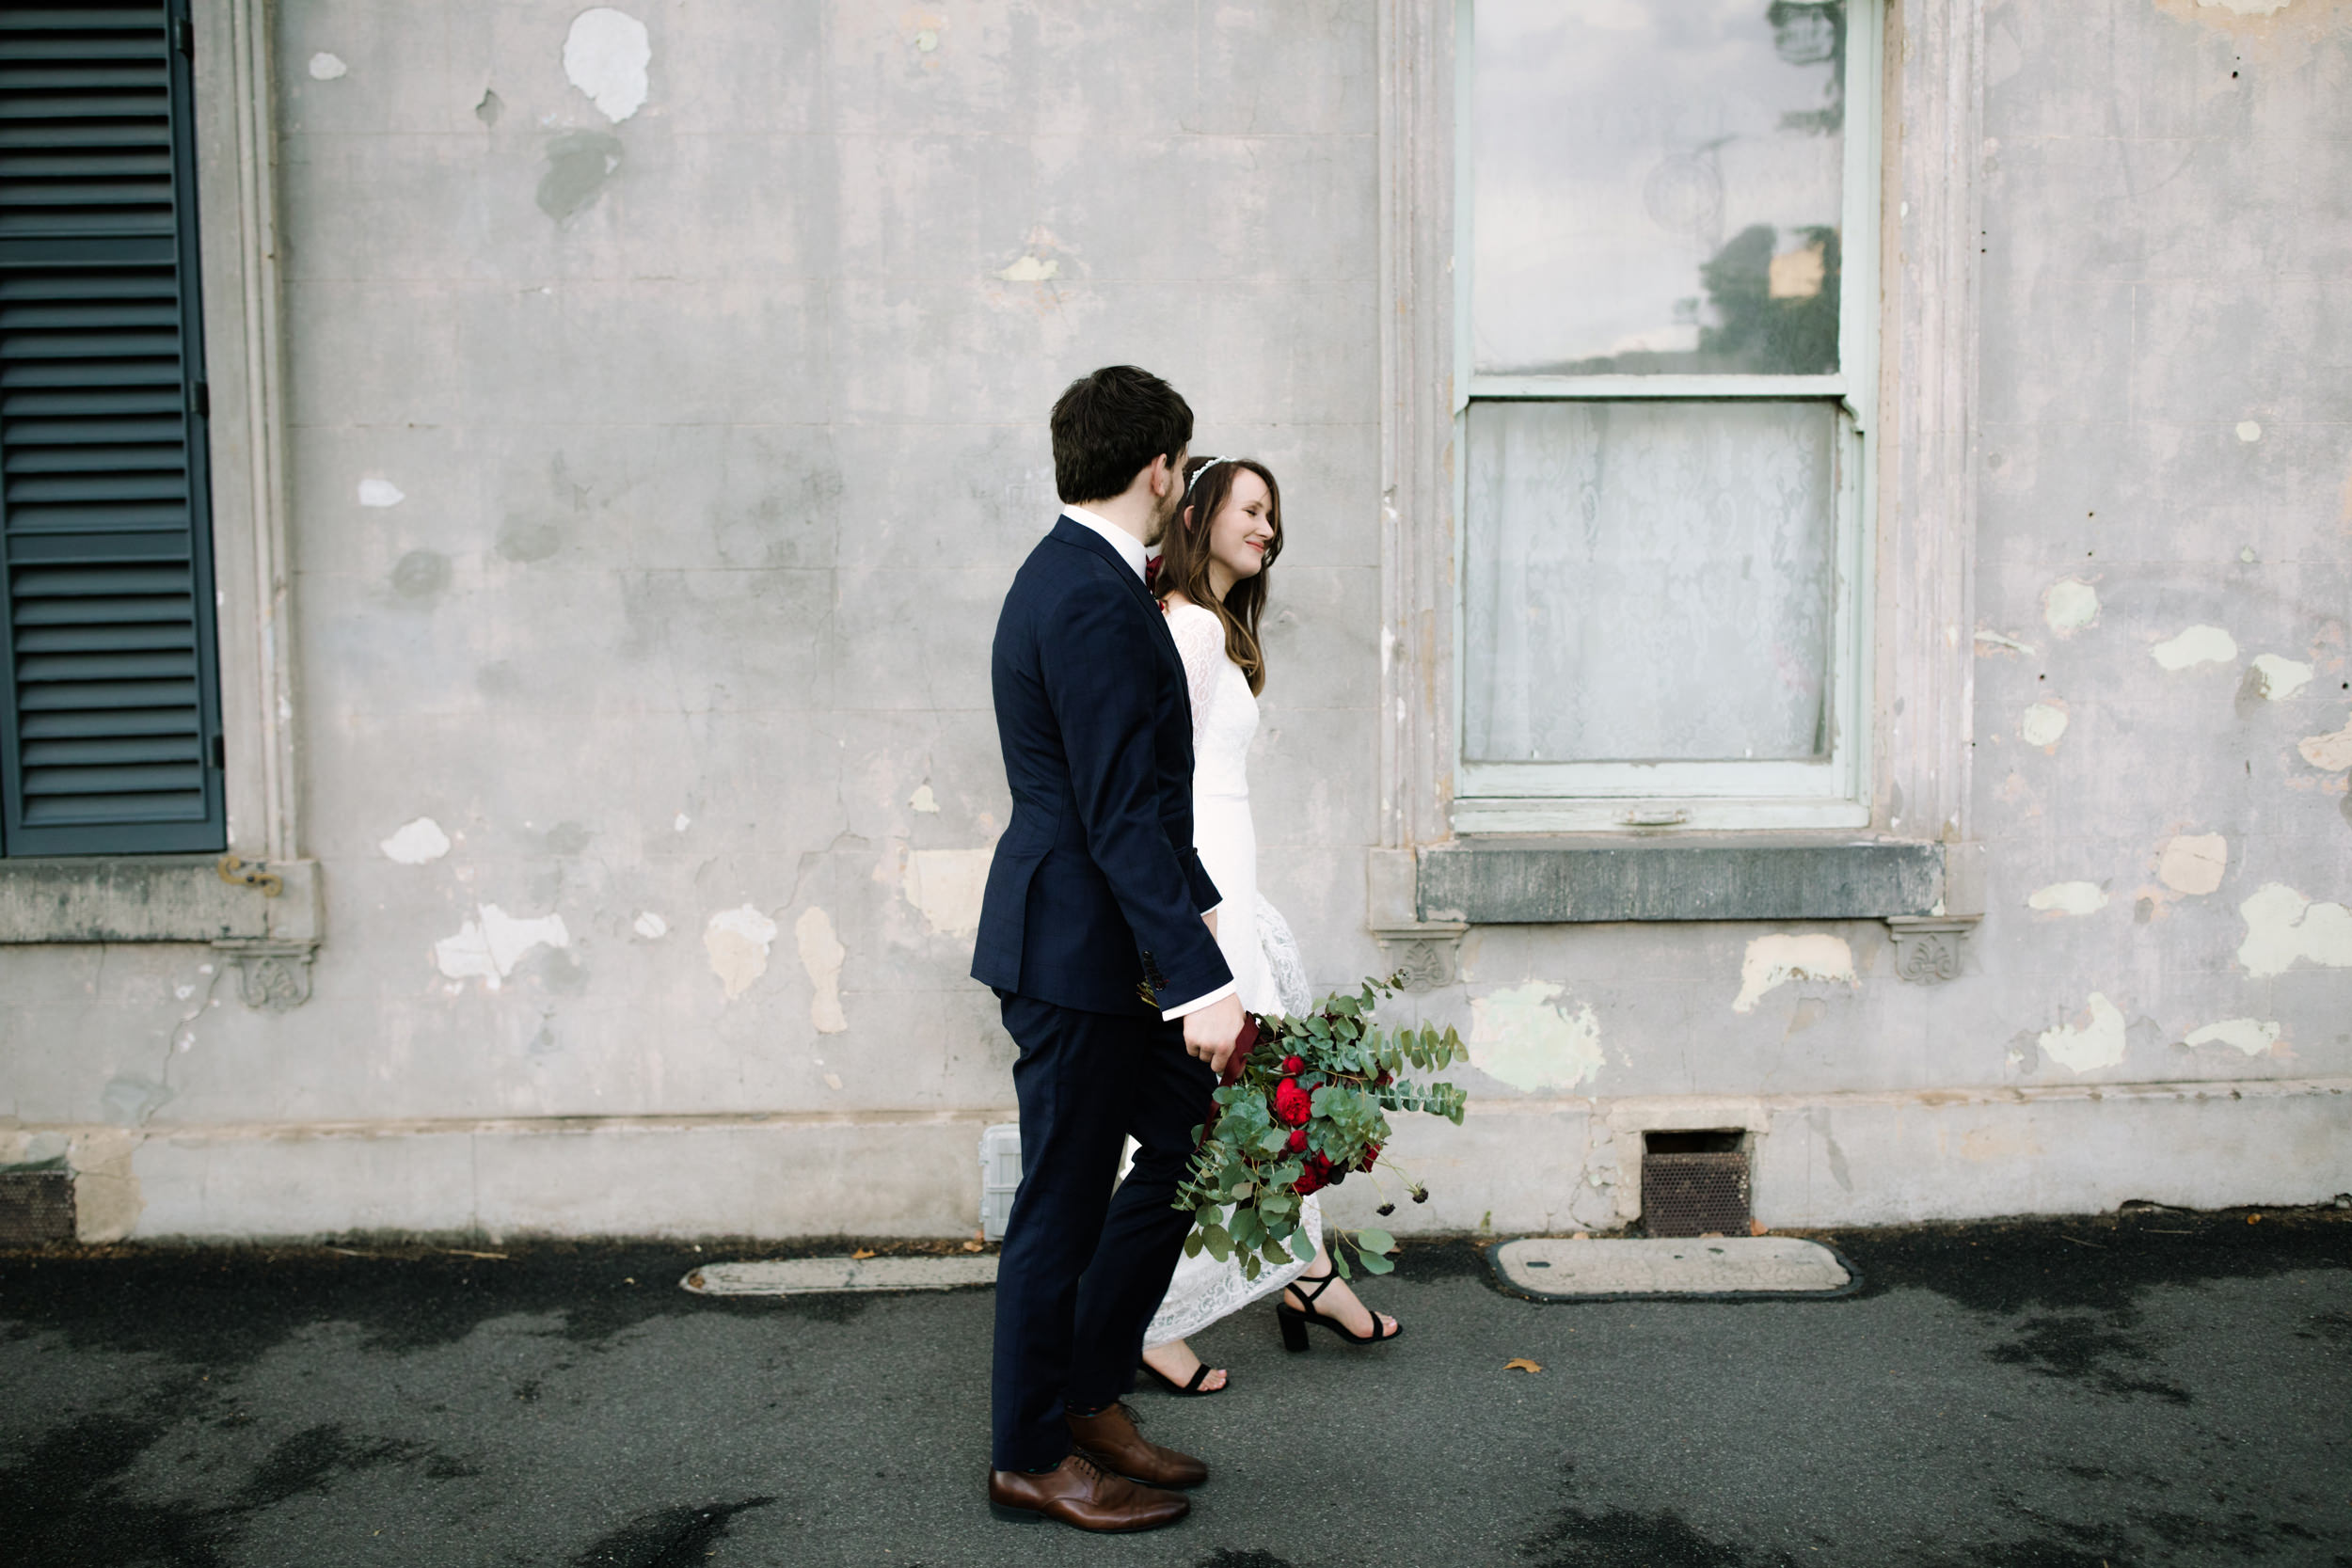 I_Got_You_Babe_Weddings_Emily_Matt_Rupert_Glasshaus_Melbourne0167.JPG